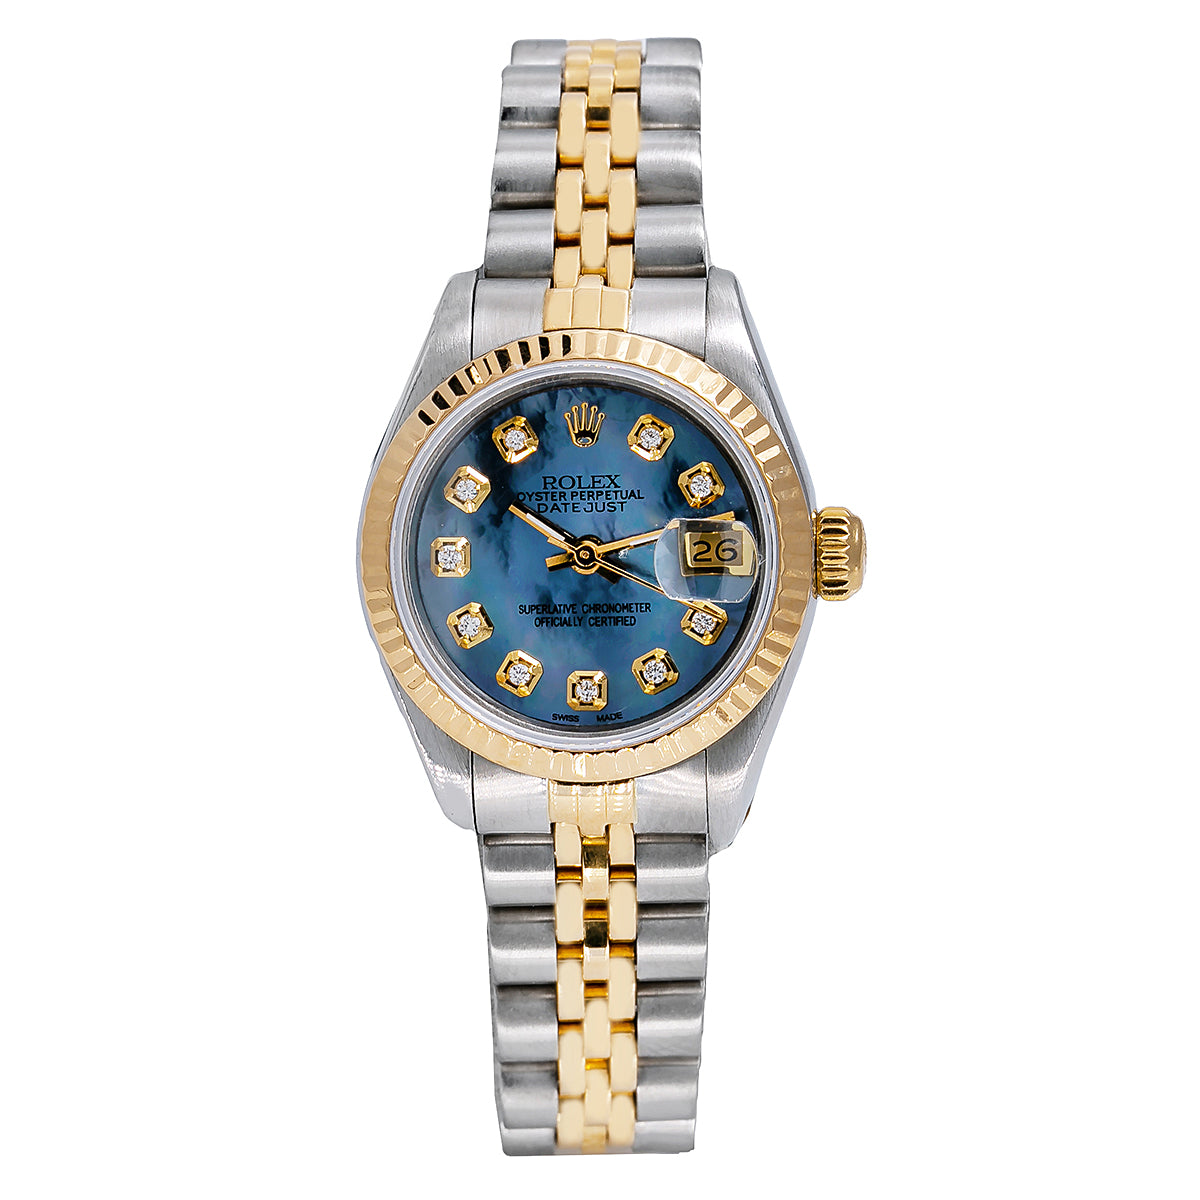 Rolex Datejust Two Tone Diamond Watch, 6917 26mm, Sky Blue Dial with Diamond Hour Marks